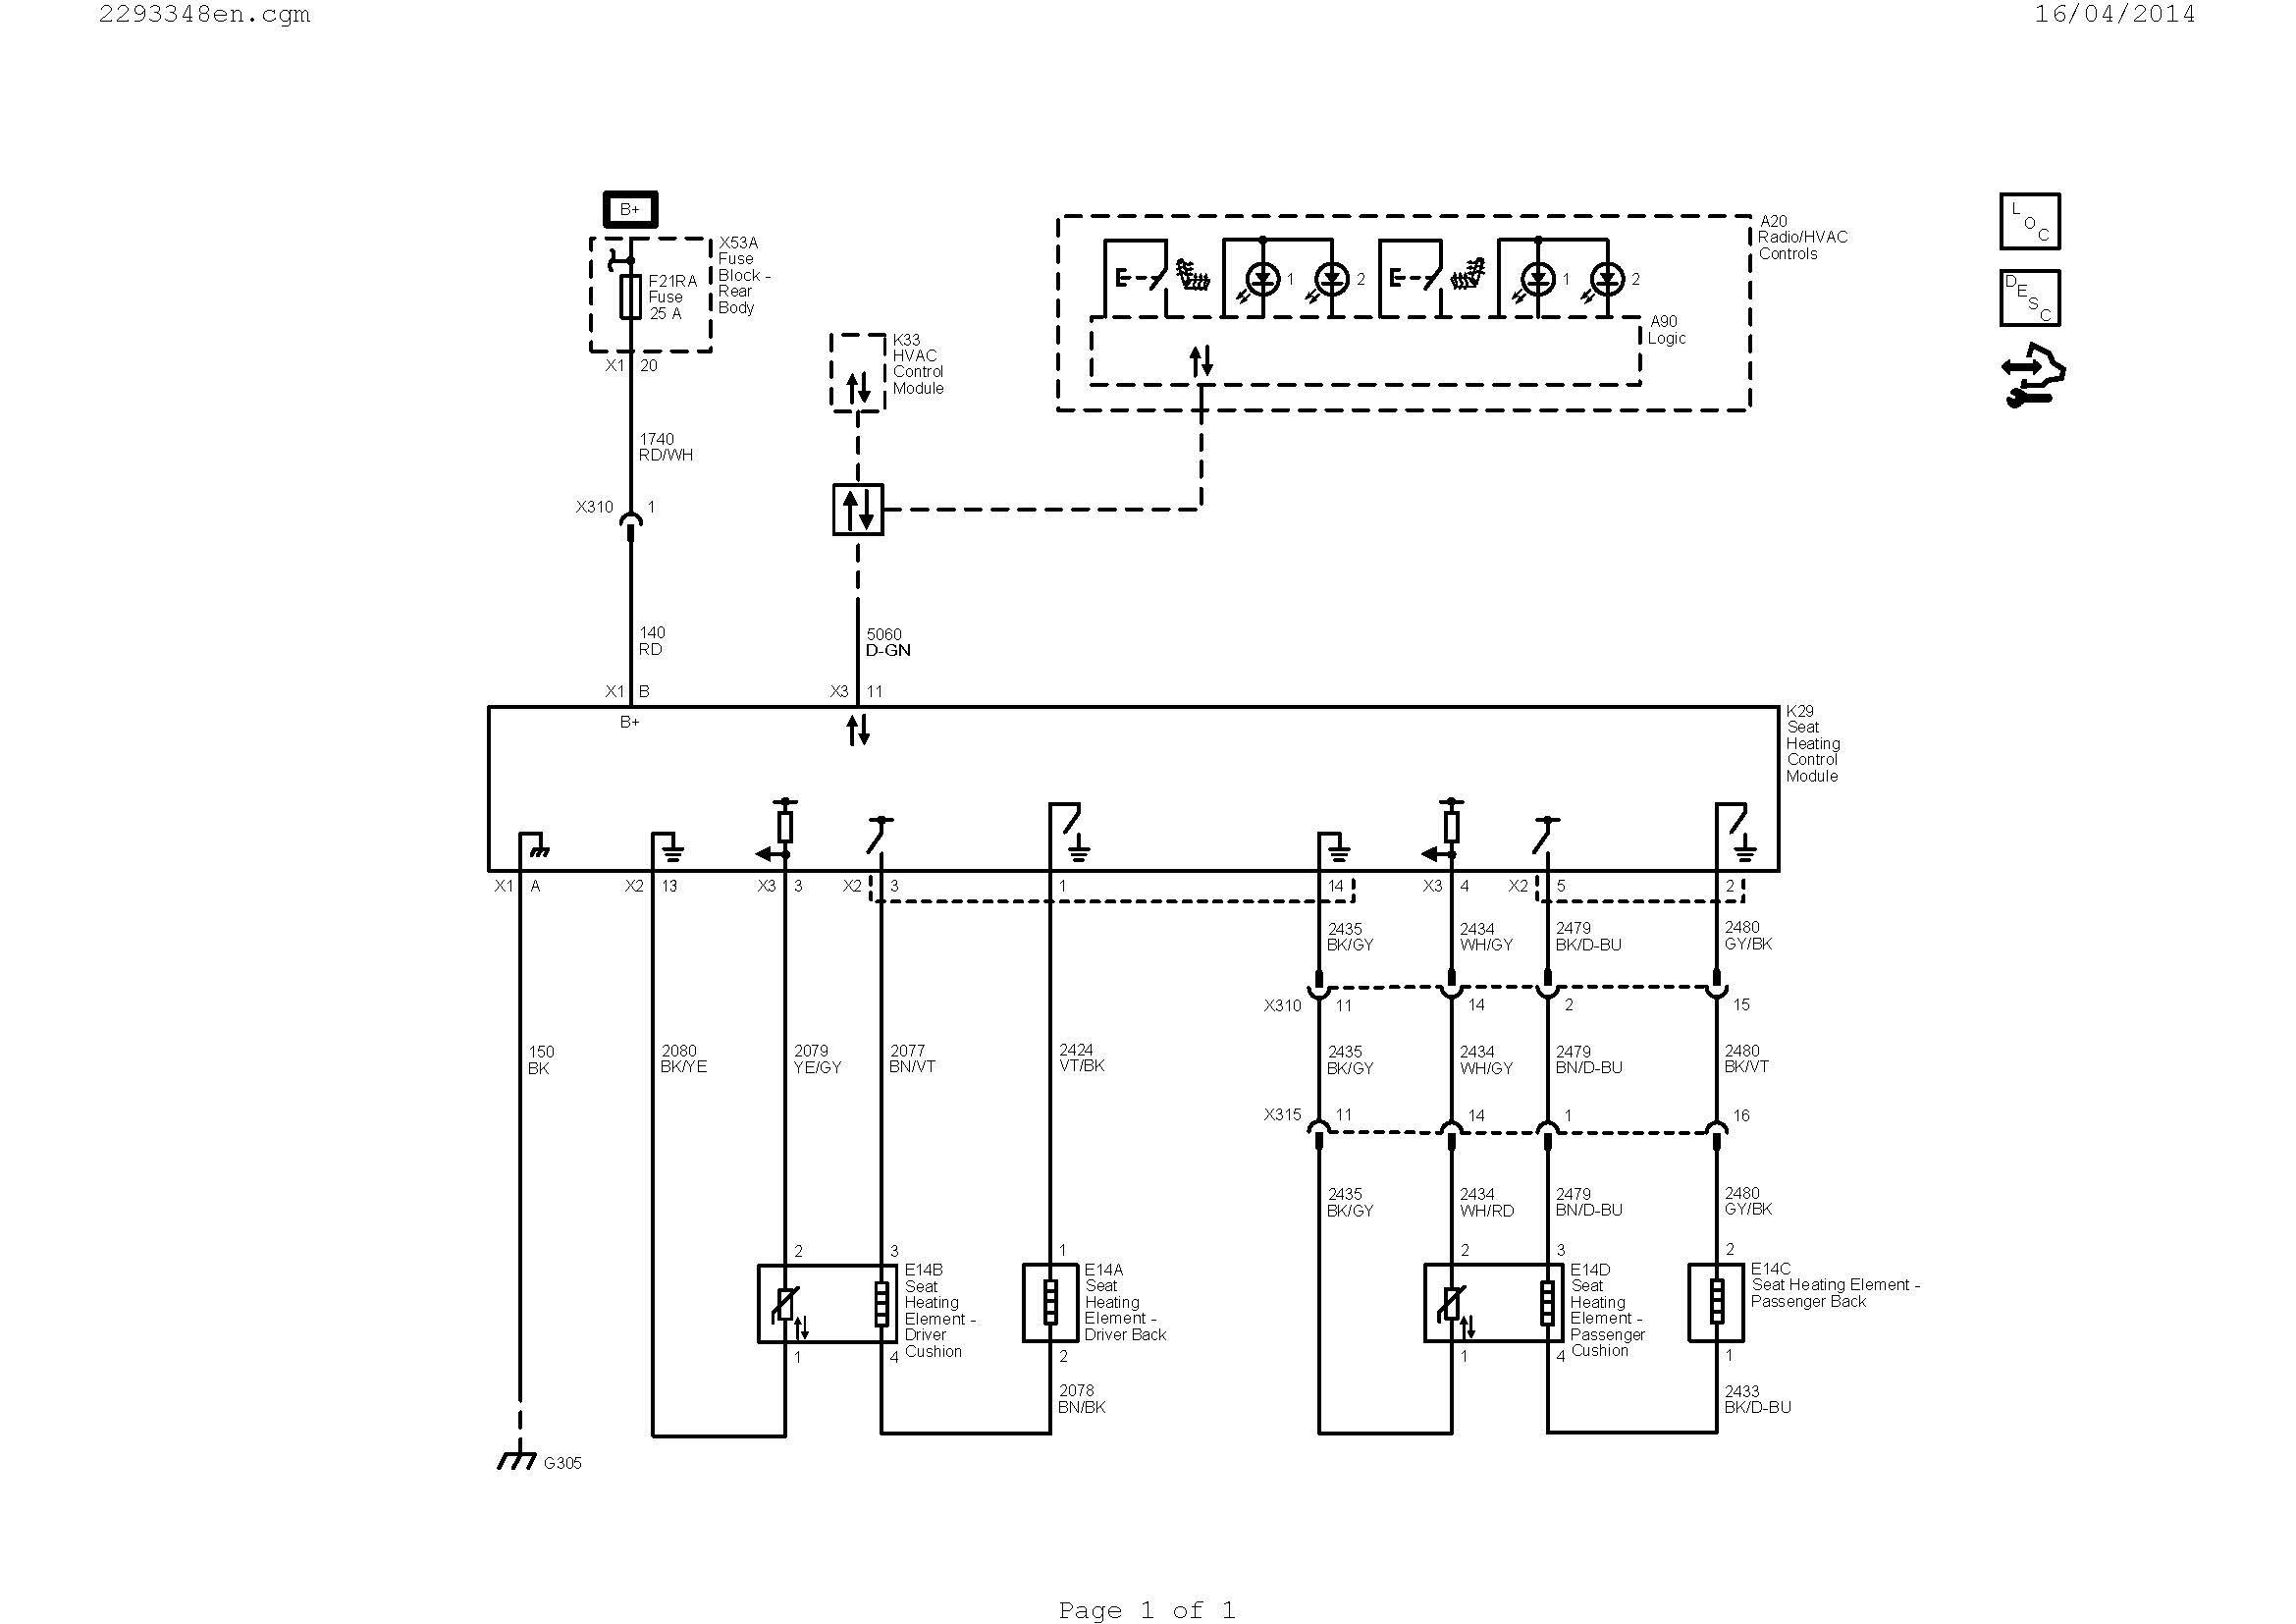 Wiring Diagram for the Nest thermostat - Nest Wireless thermostat Wiring  Diagram Refrence Wiring Diagram Ac